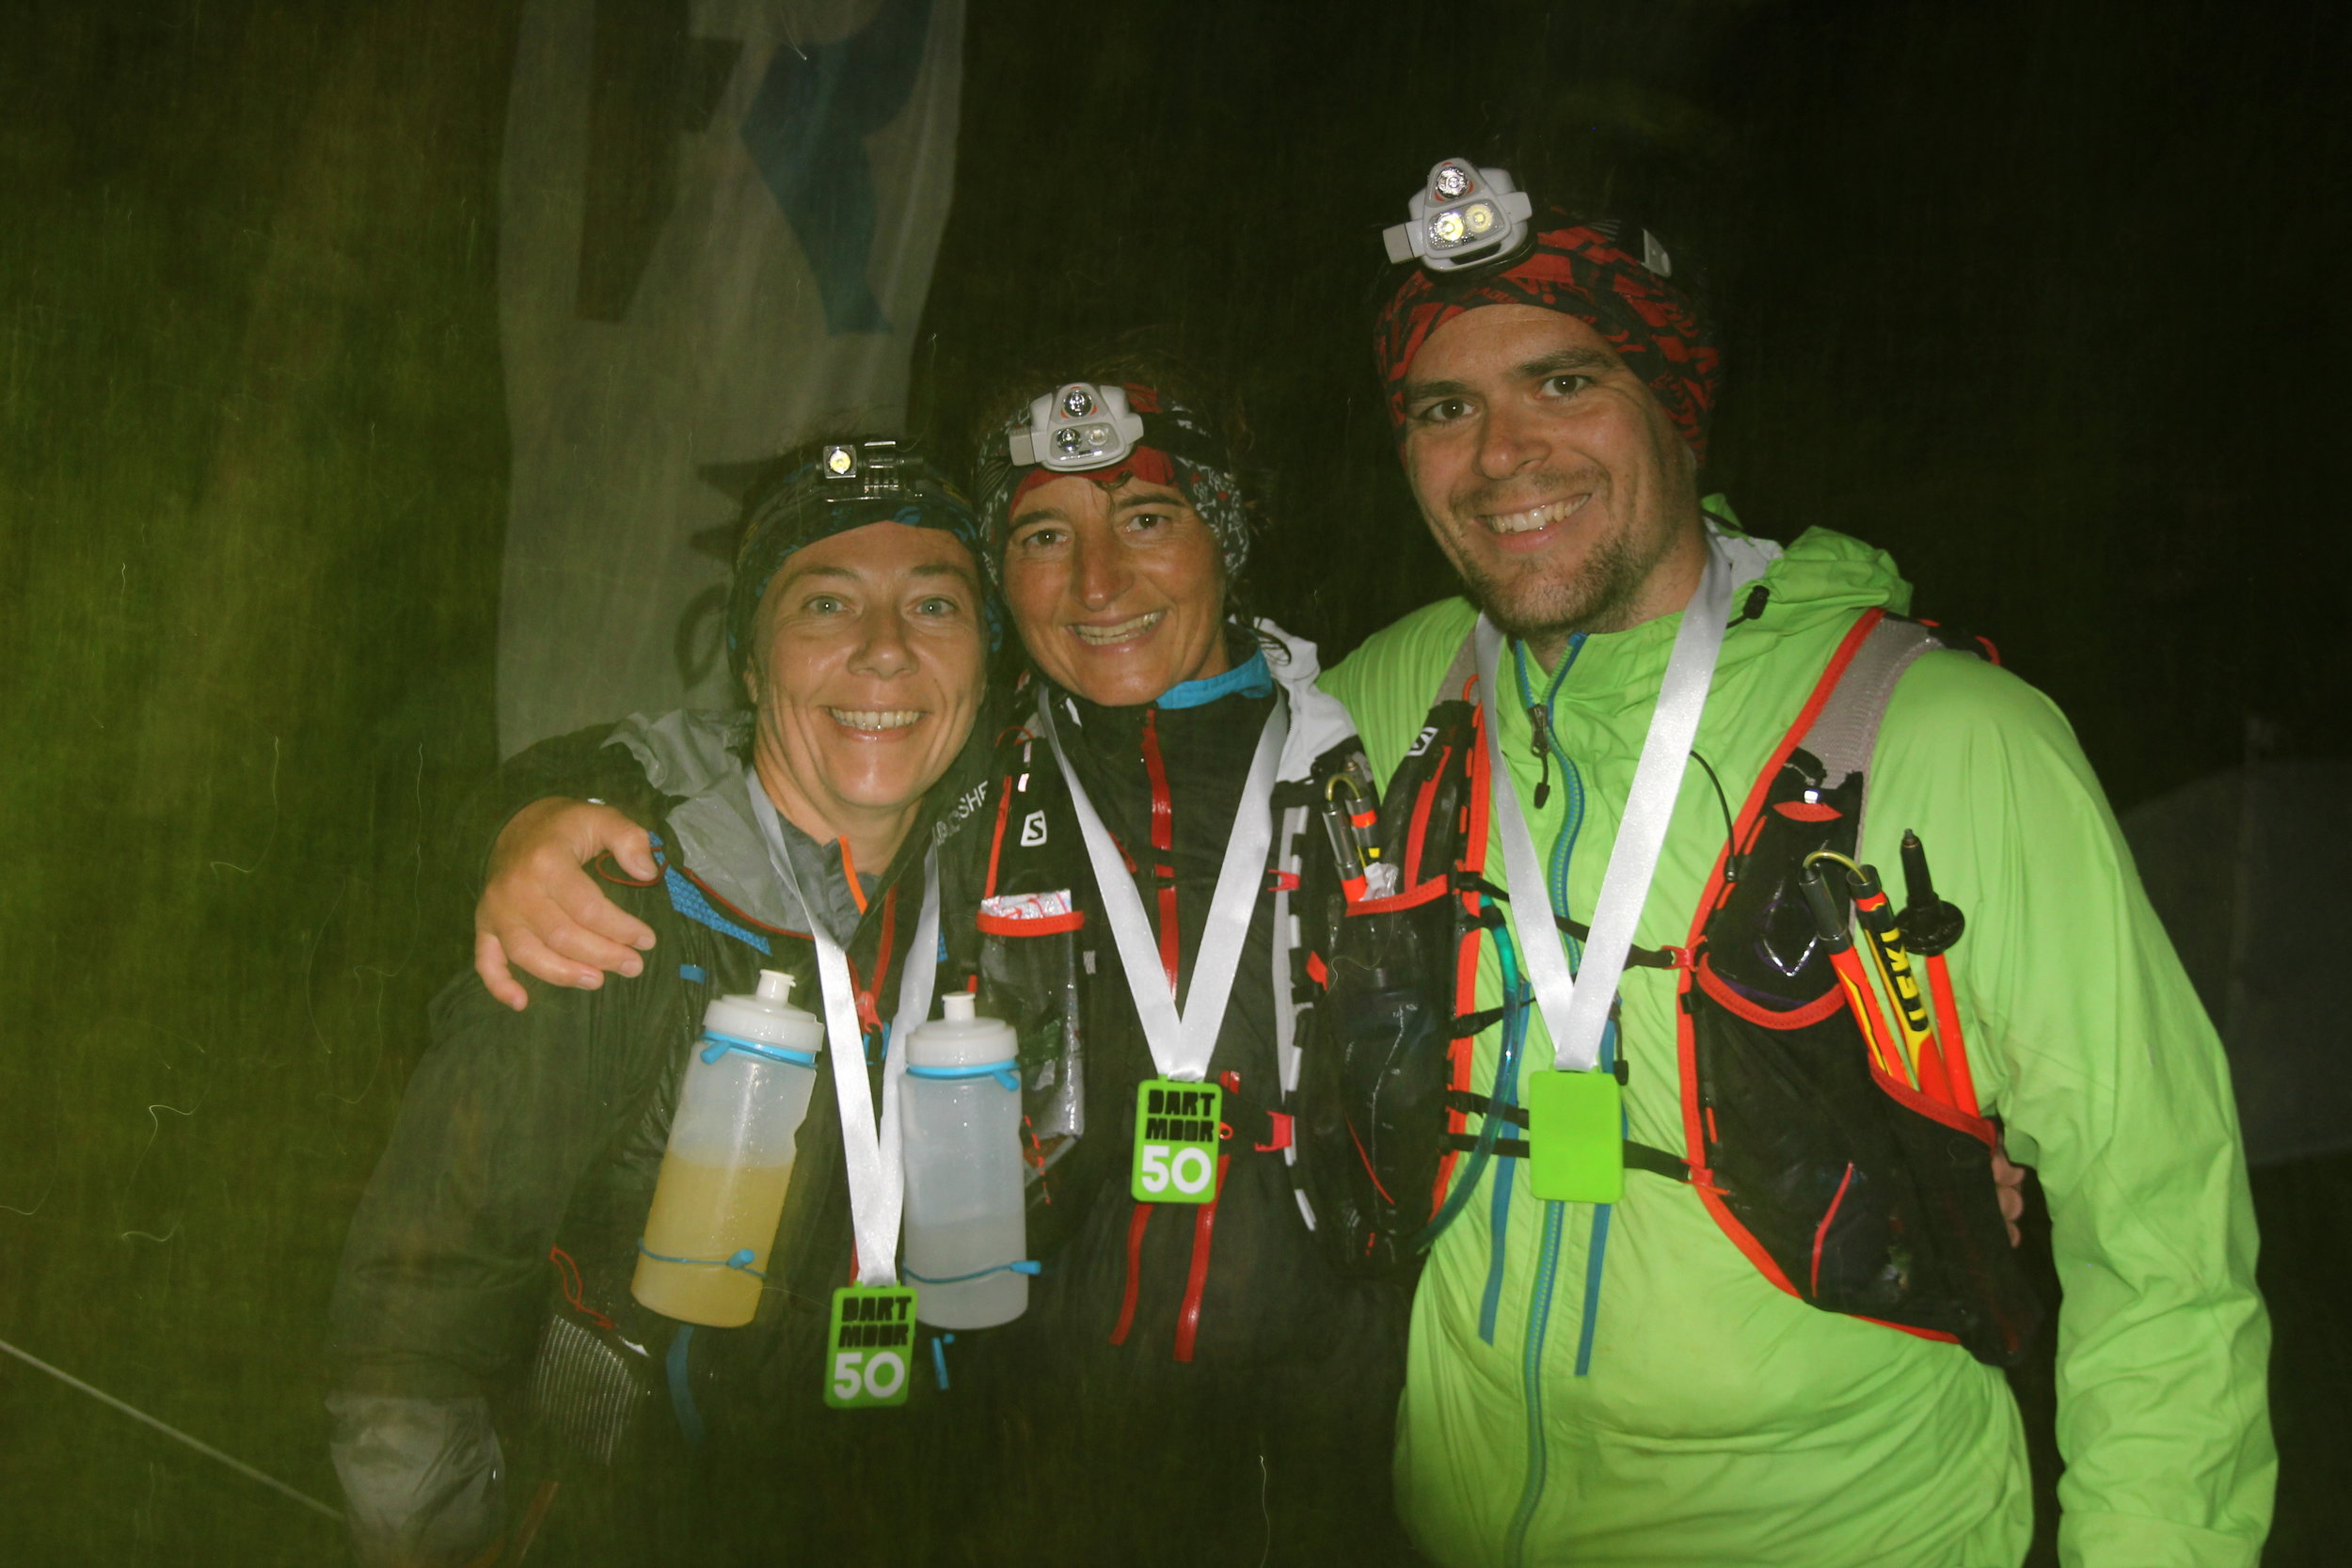 Dratmoor 50 finishers coming in after dark